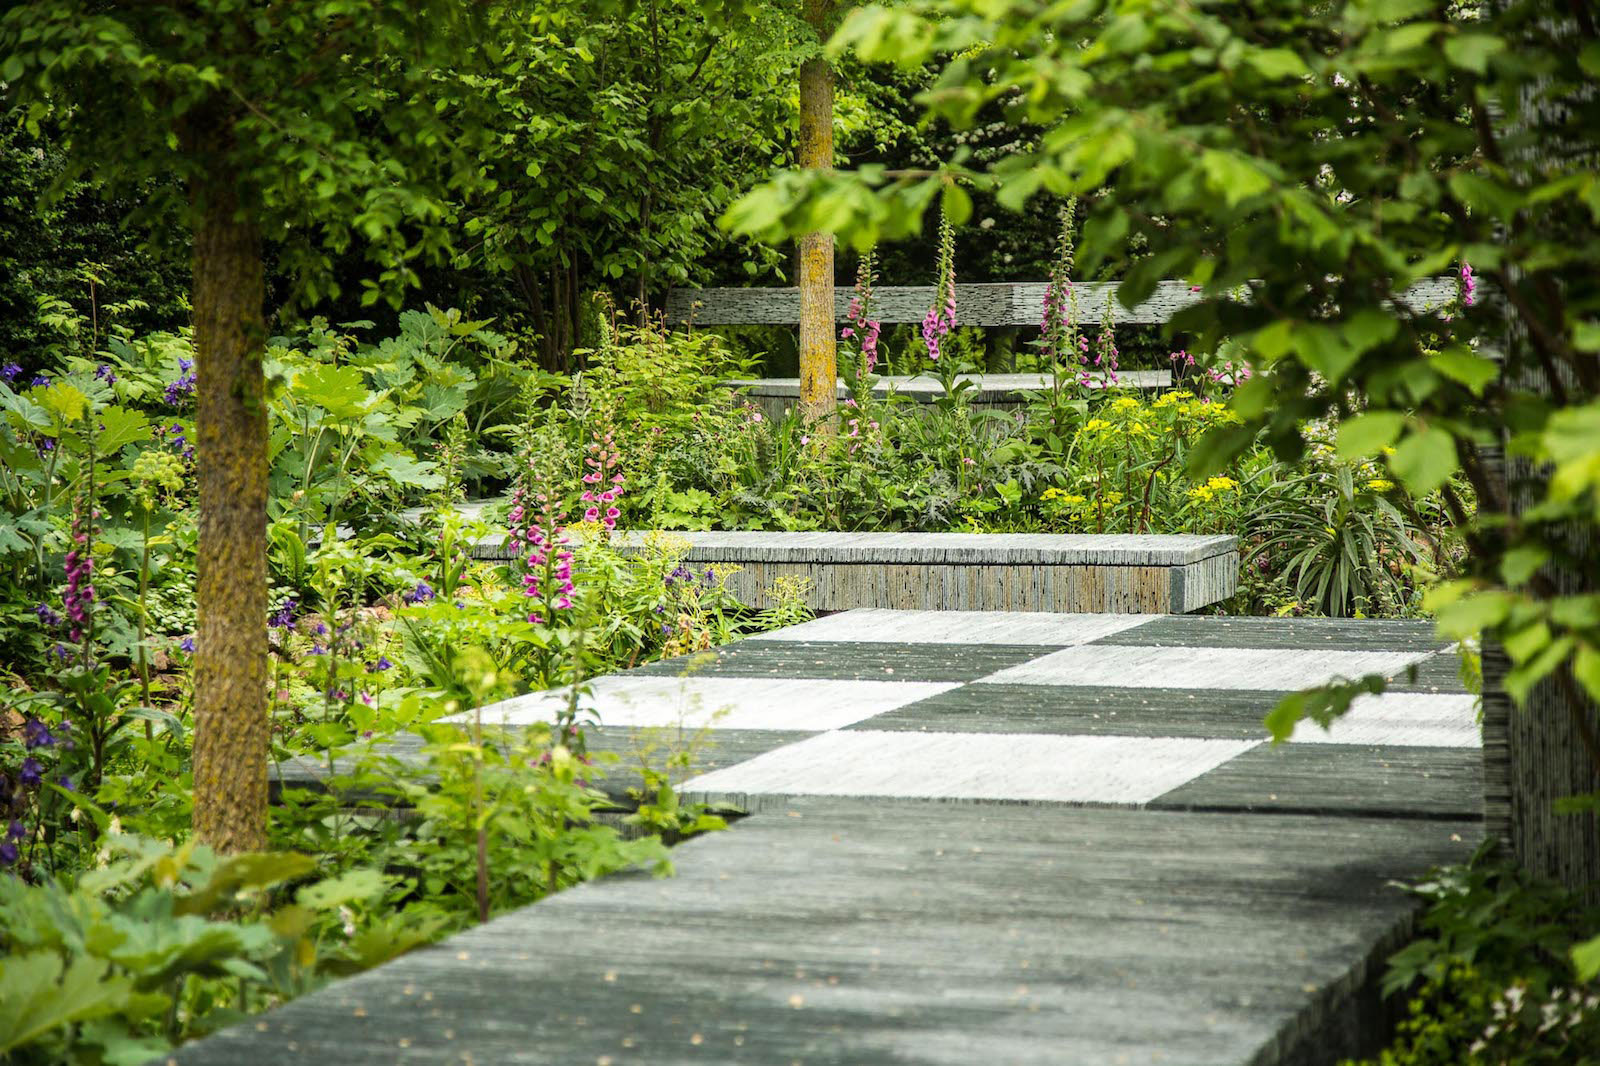 Garden design courses from the Oxford College of Garden Design